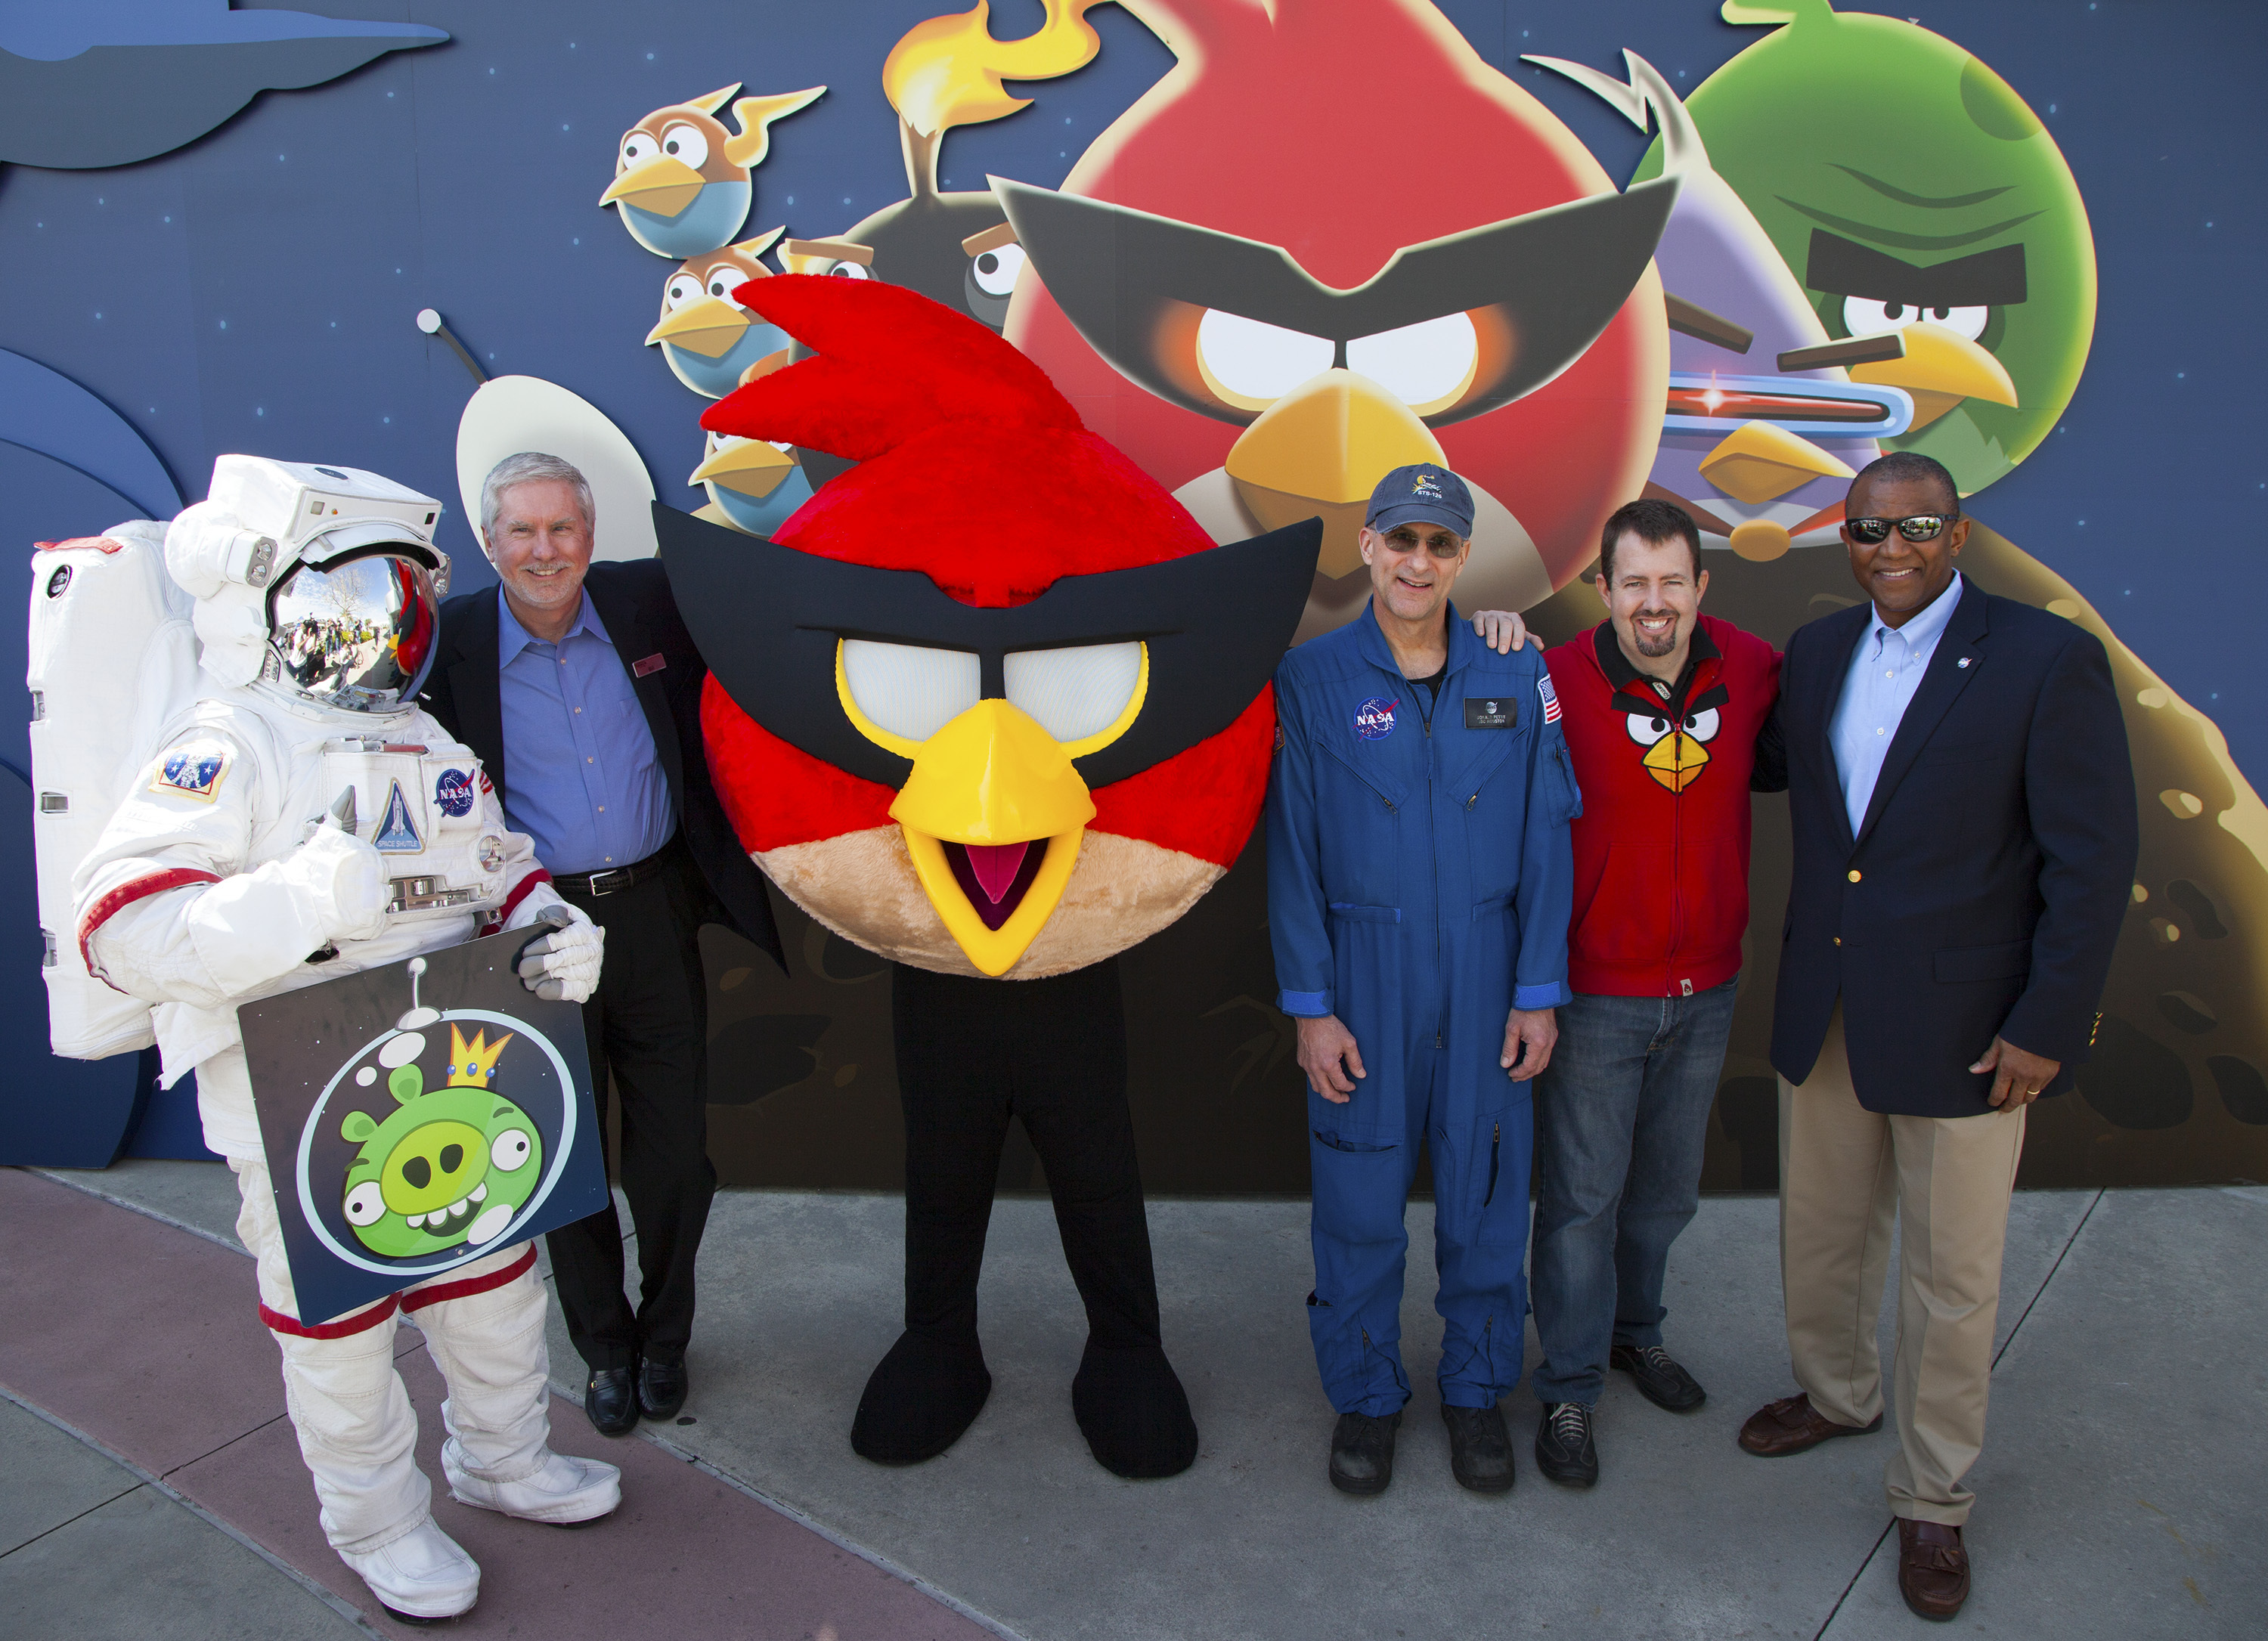 Welcoming Visitors to Angry Birds Space Encounter